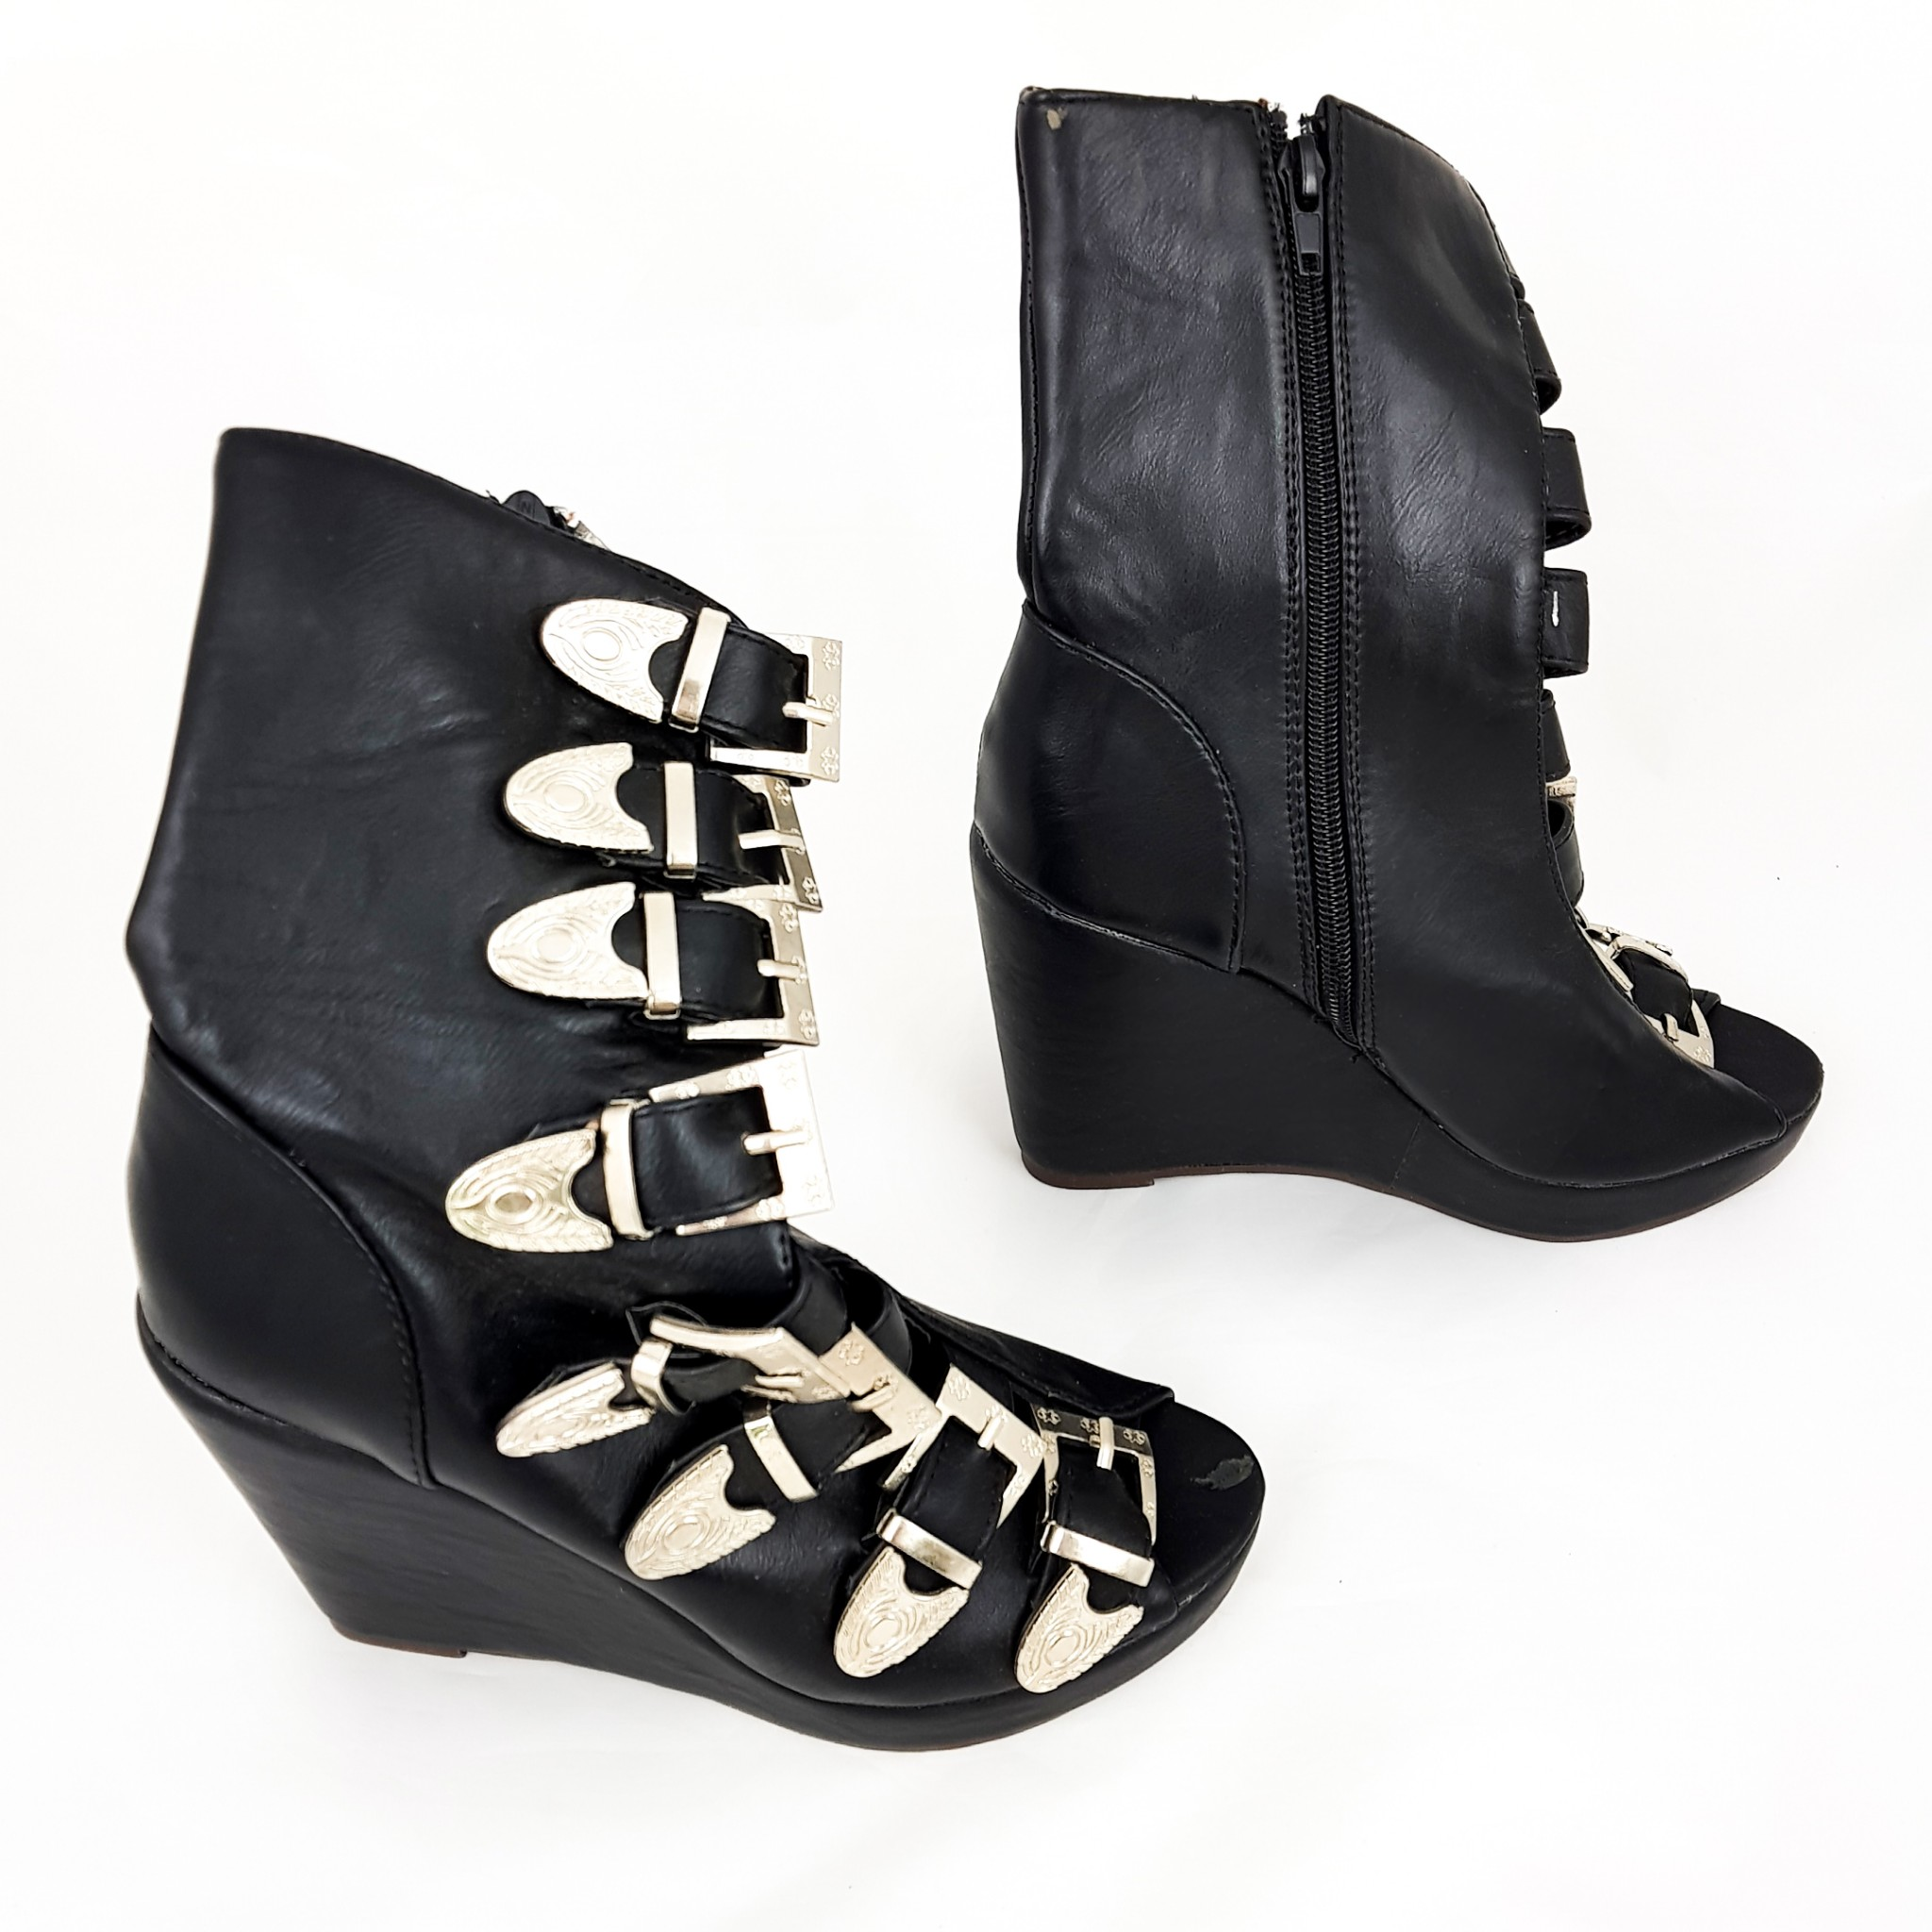 Details about Women's Goth Black Metal Buckle Boots Ladies Peep Toe Gladiator Wedge Shoes New